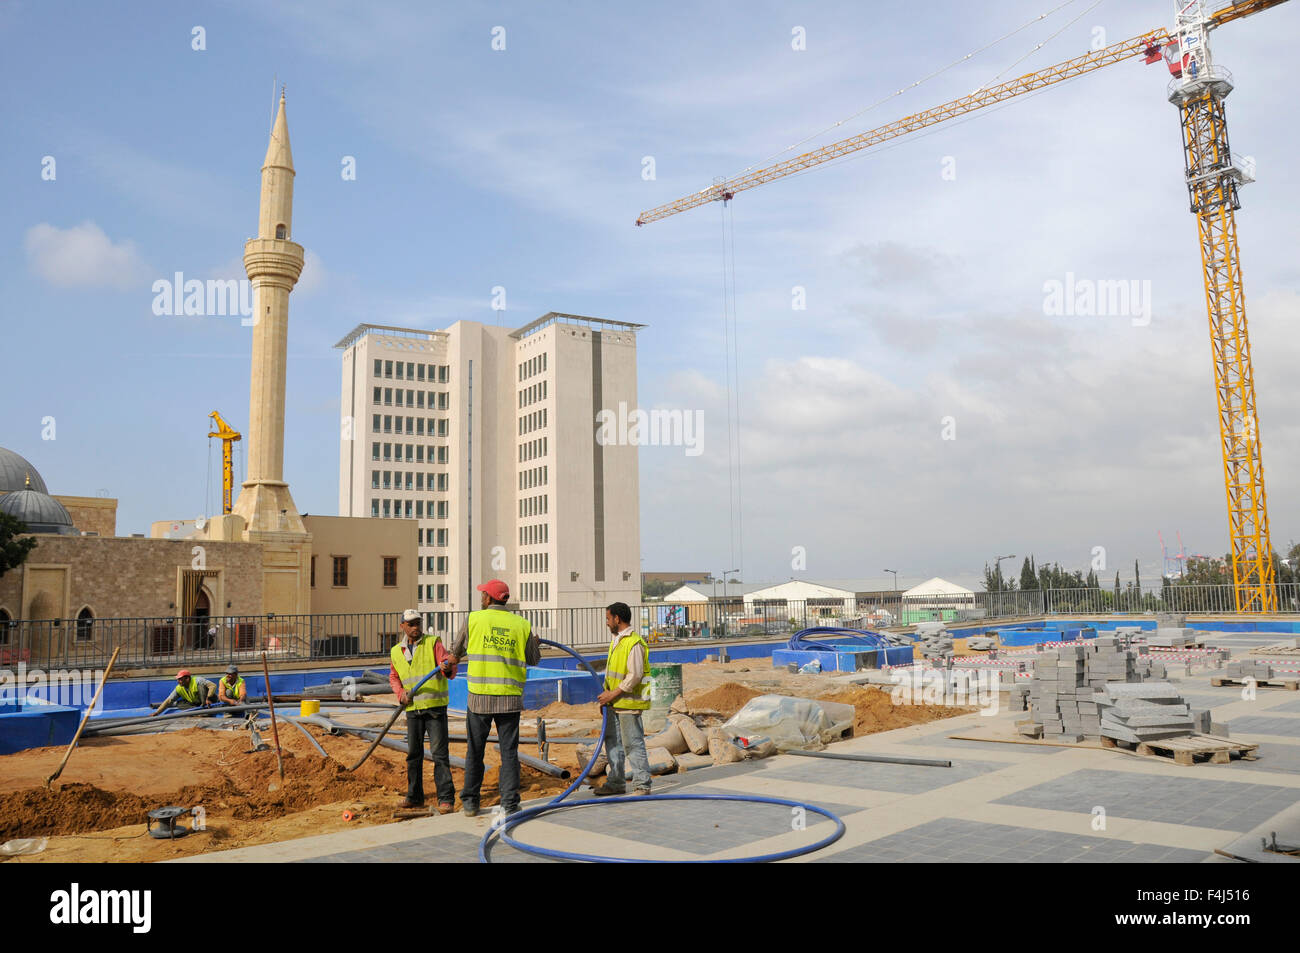 Reconstruction of Downtown Beirut by Solidere Consortium set up by late Rafik Hariri, Beirut, Lebanon, Middle East - Stock Image